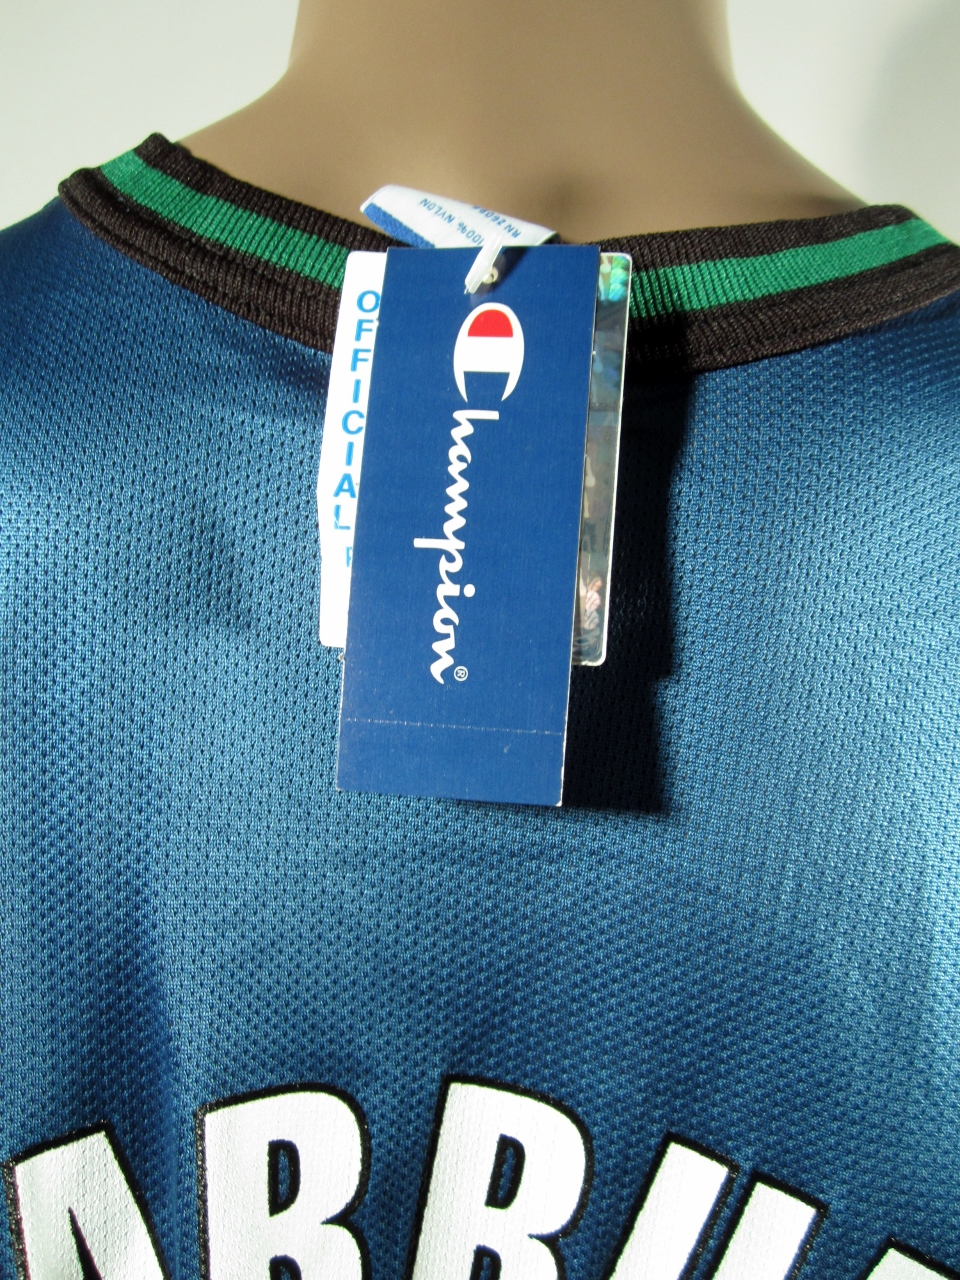 online store 6cb2f 2858d Stephon Marbury Minnesota Timberwolves Champion Jersey NWT sold by DFRNSH8